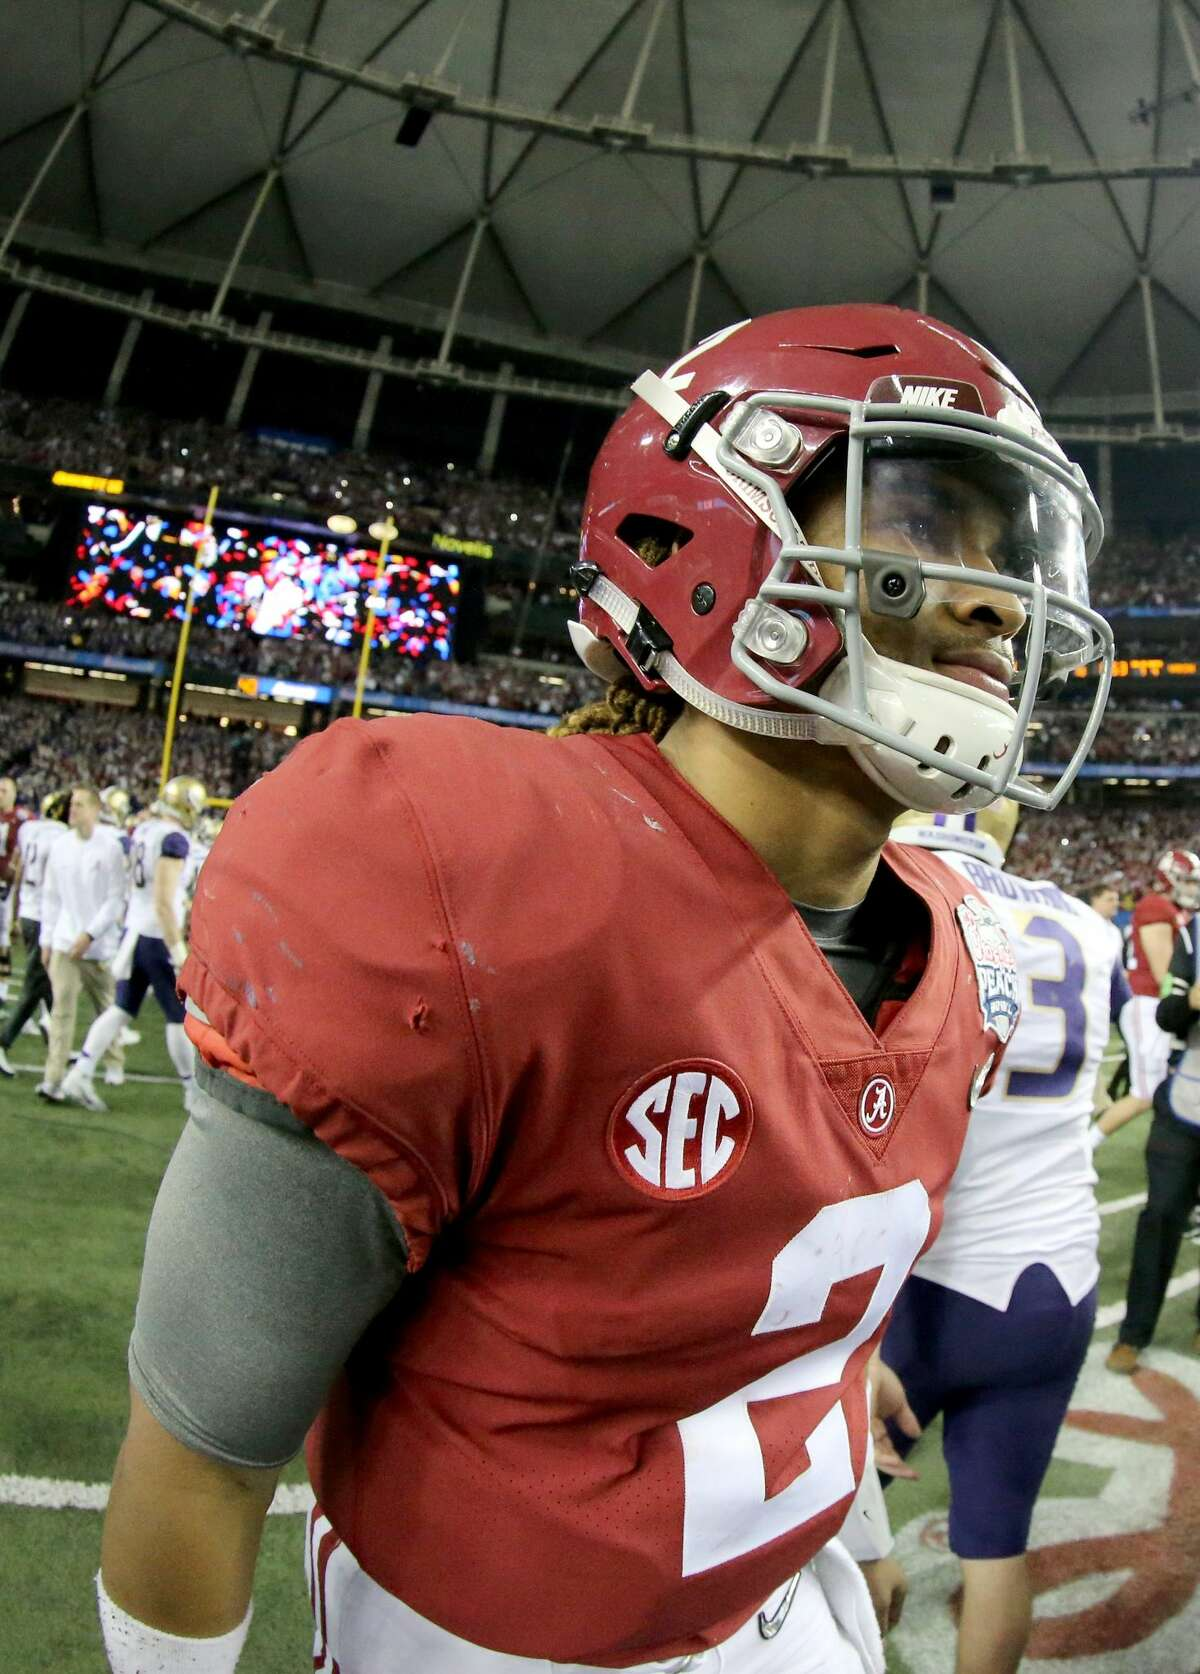 ATLANTA, GA - DECEMBER 31: Jalen Hurts #2 of the Alabama Crimson Tide looks on after winning 24 to 7 against the Washington Huskies during the 2016 Chick-fil-A Peach Bowl at the Georgia Dome on December 31, 2016 in Atlanta, Georgia. (Photo by Maddie Meyer/Getty Images)